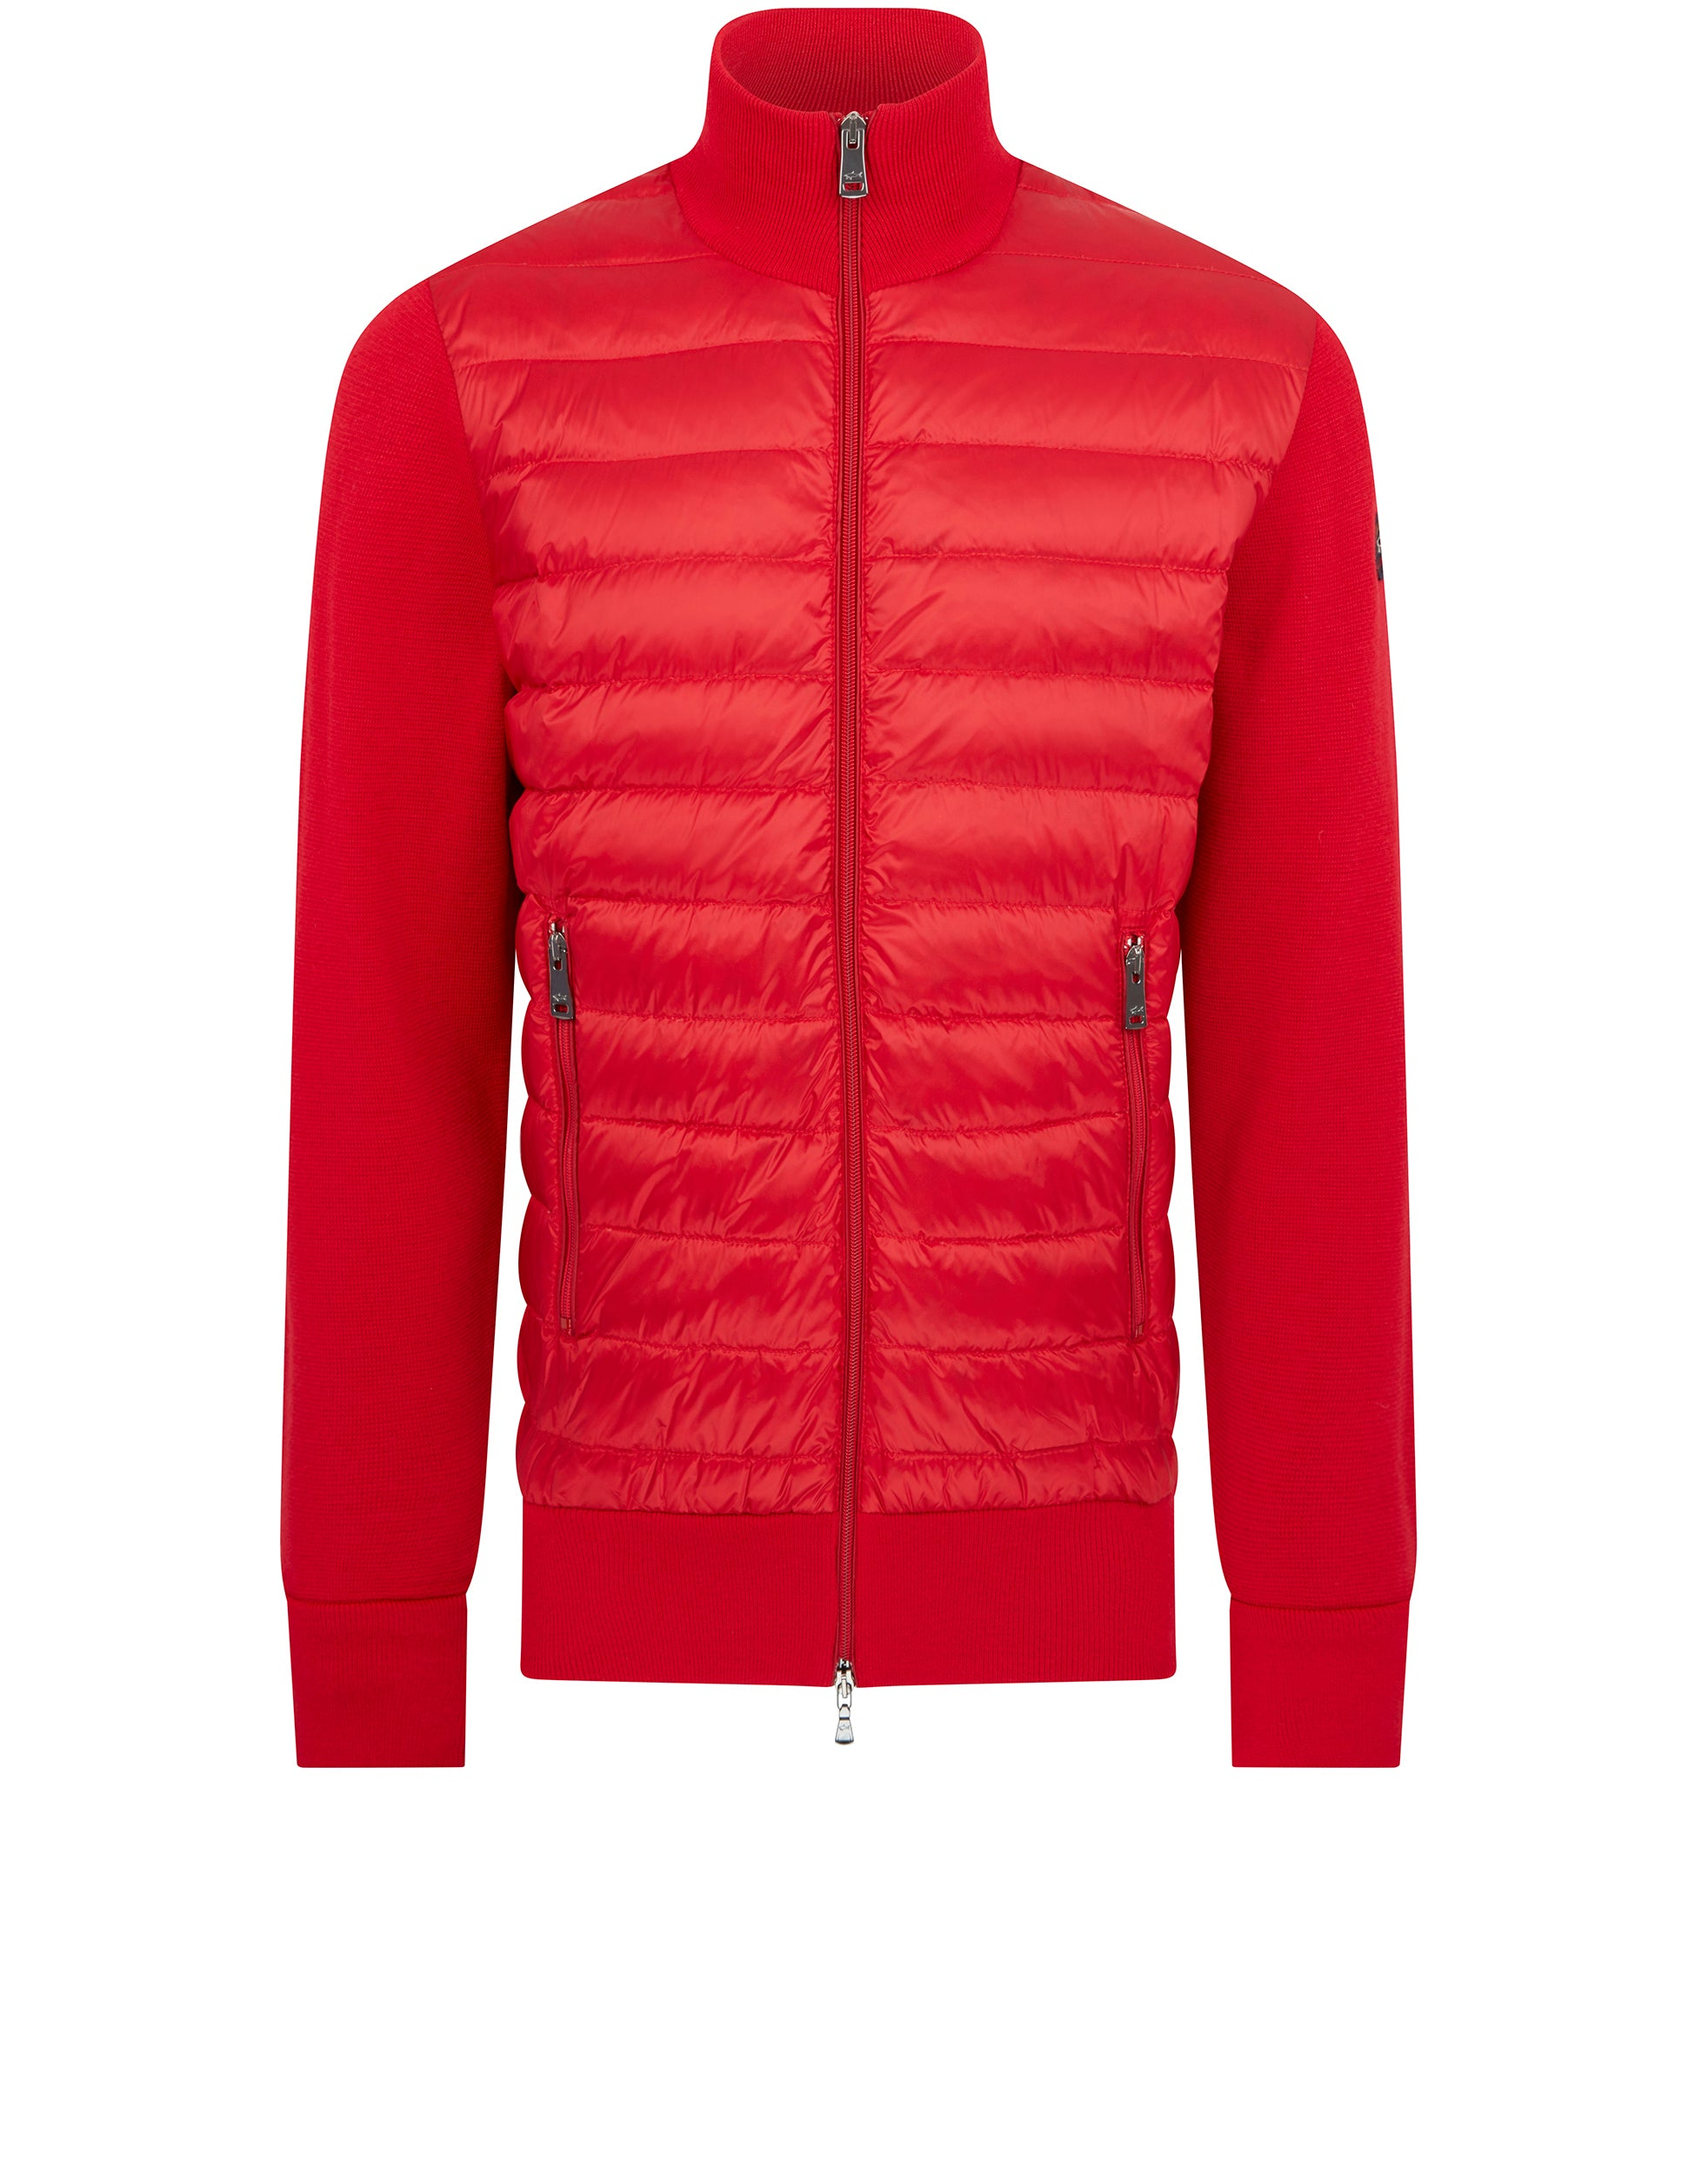 Mixed Down Watershed Jacket in Red - L / Red / 61101110 - IT